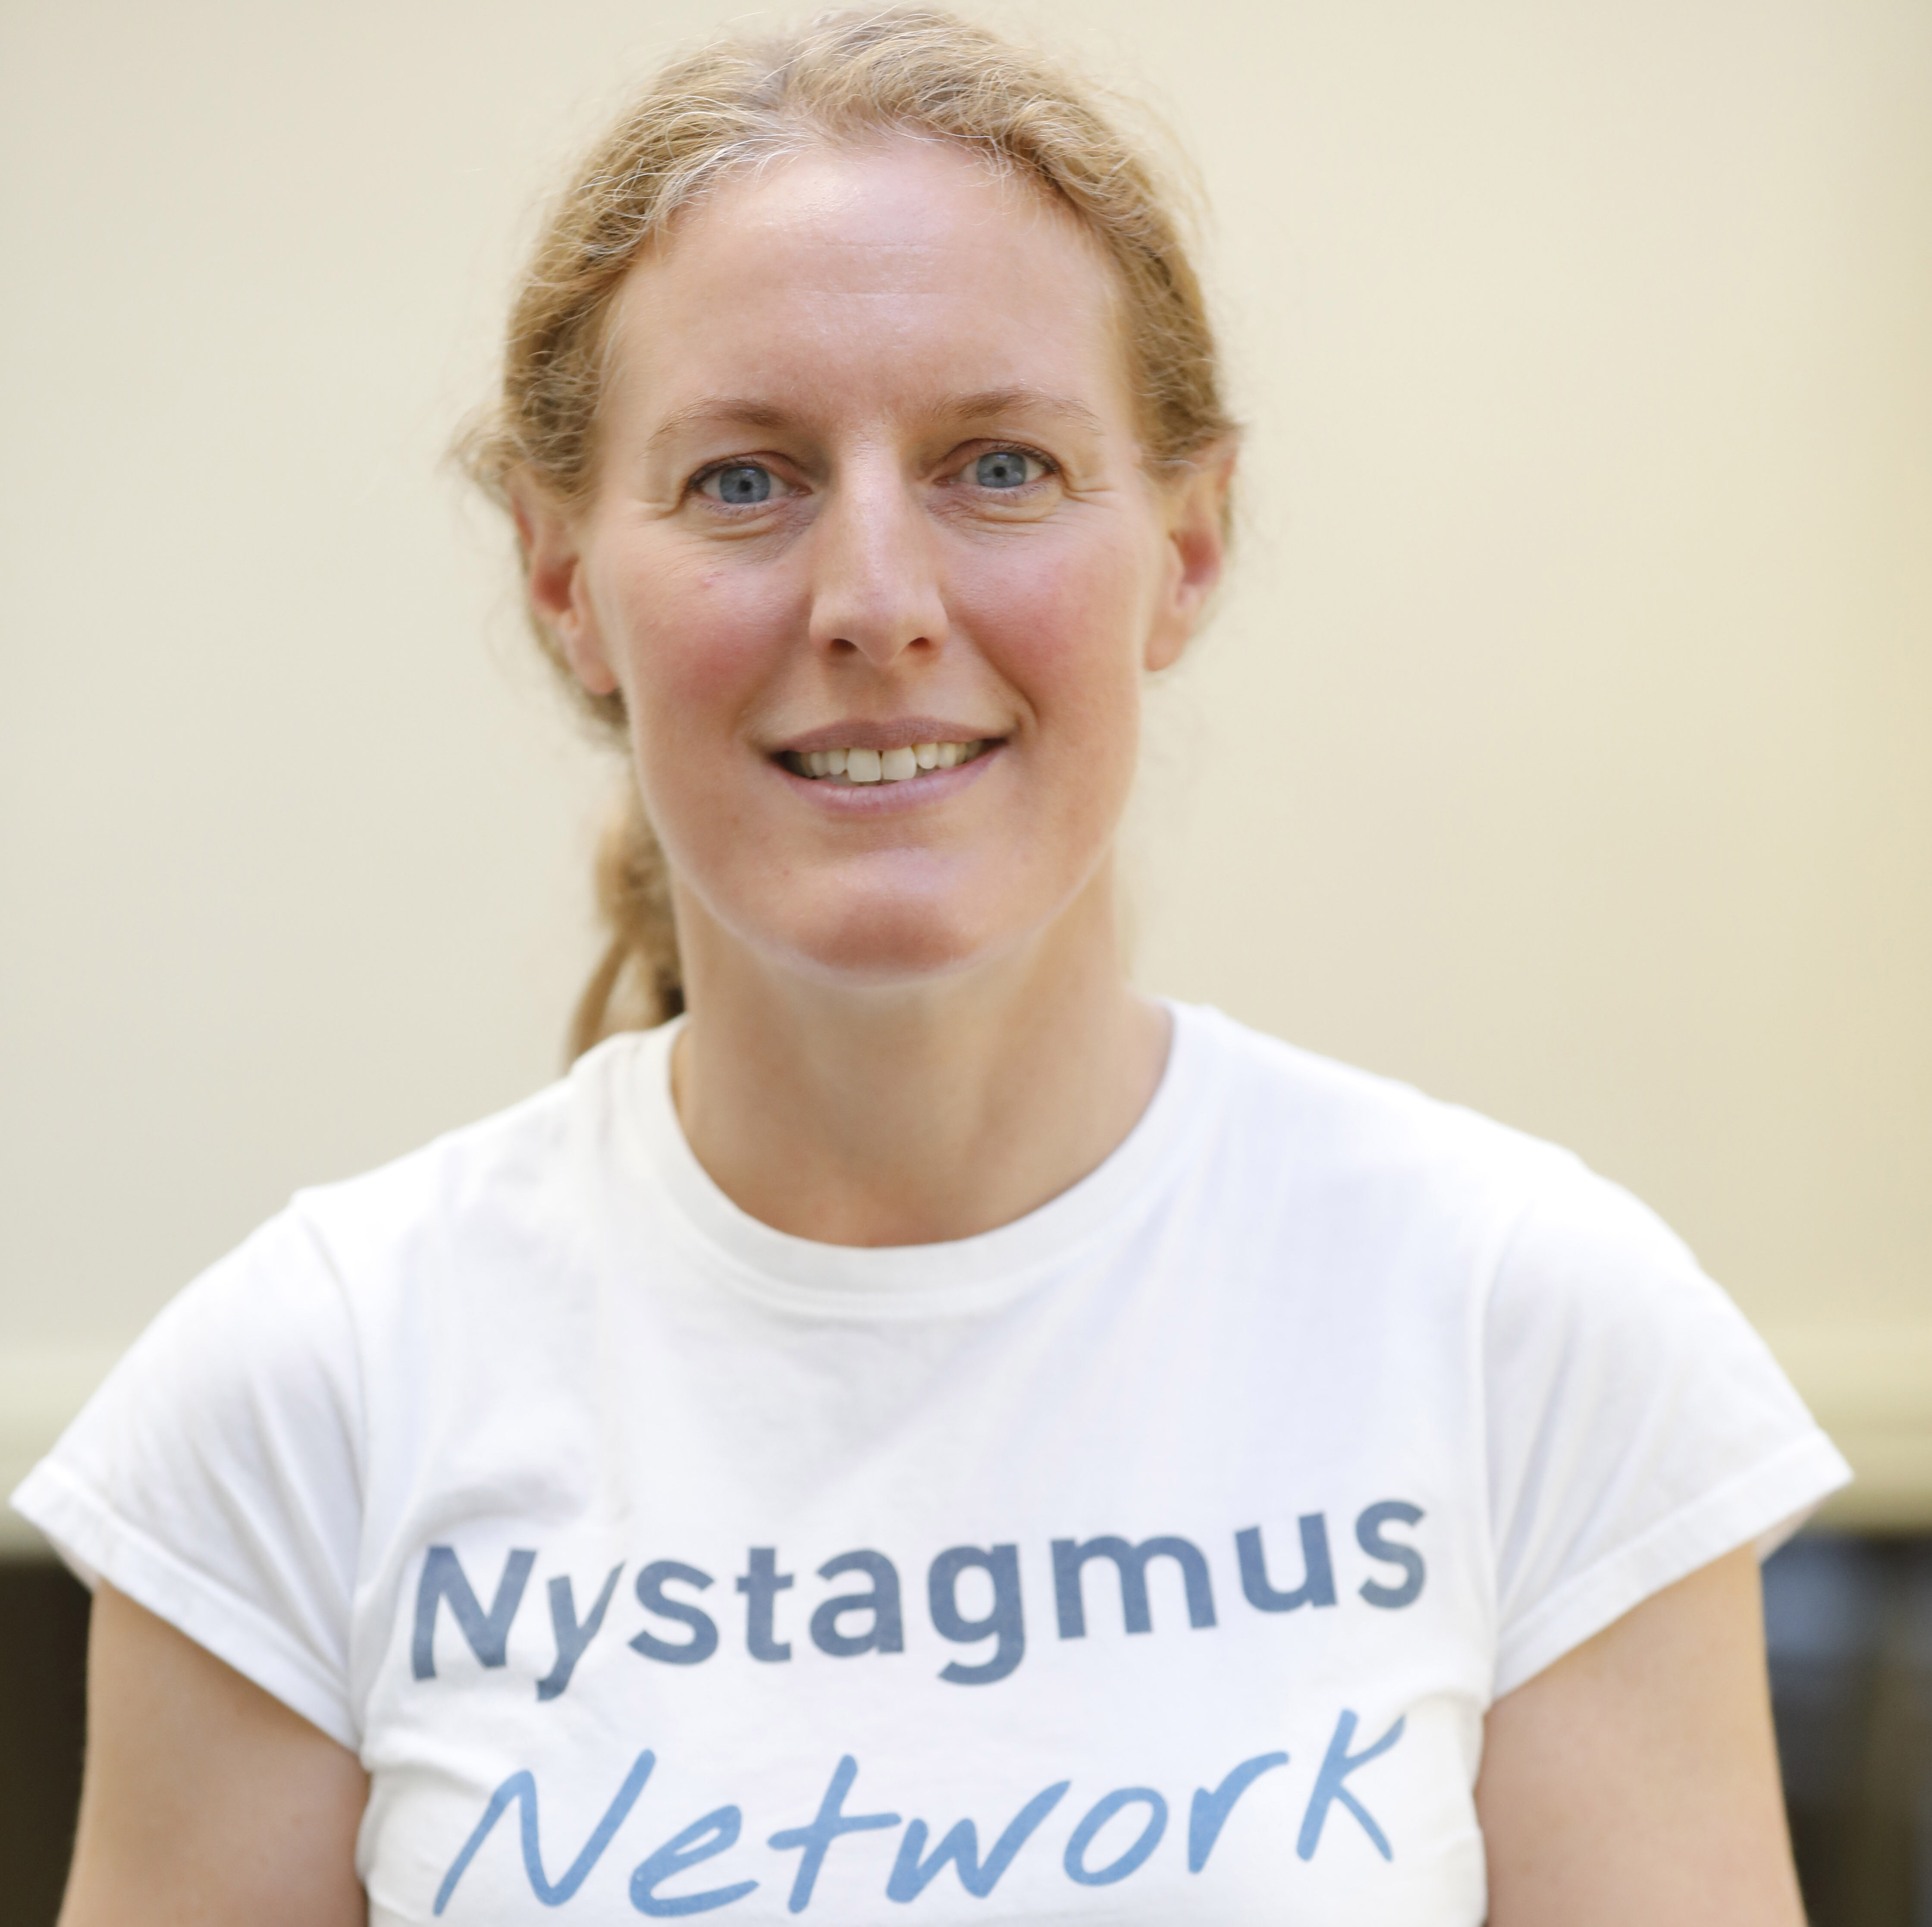 Claire Brinn wearing her Nystagmus Network T shirt